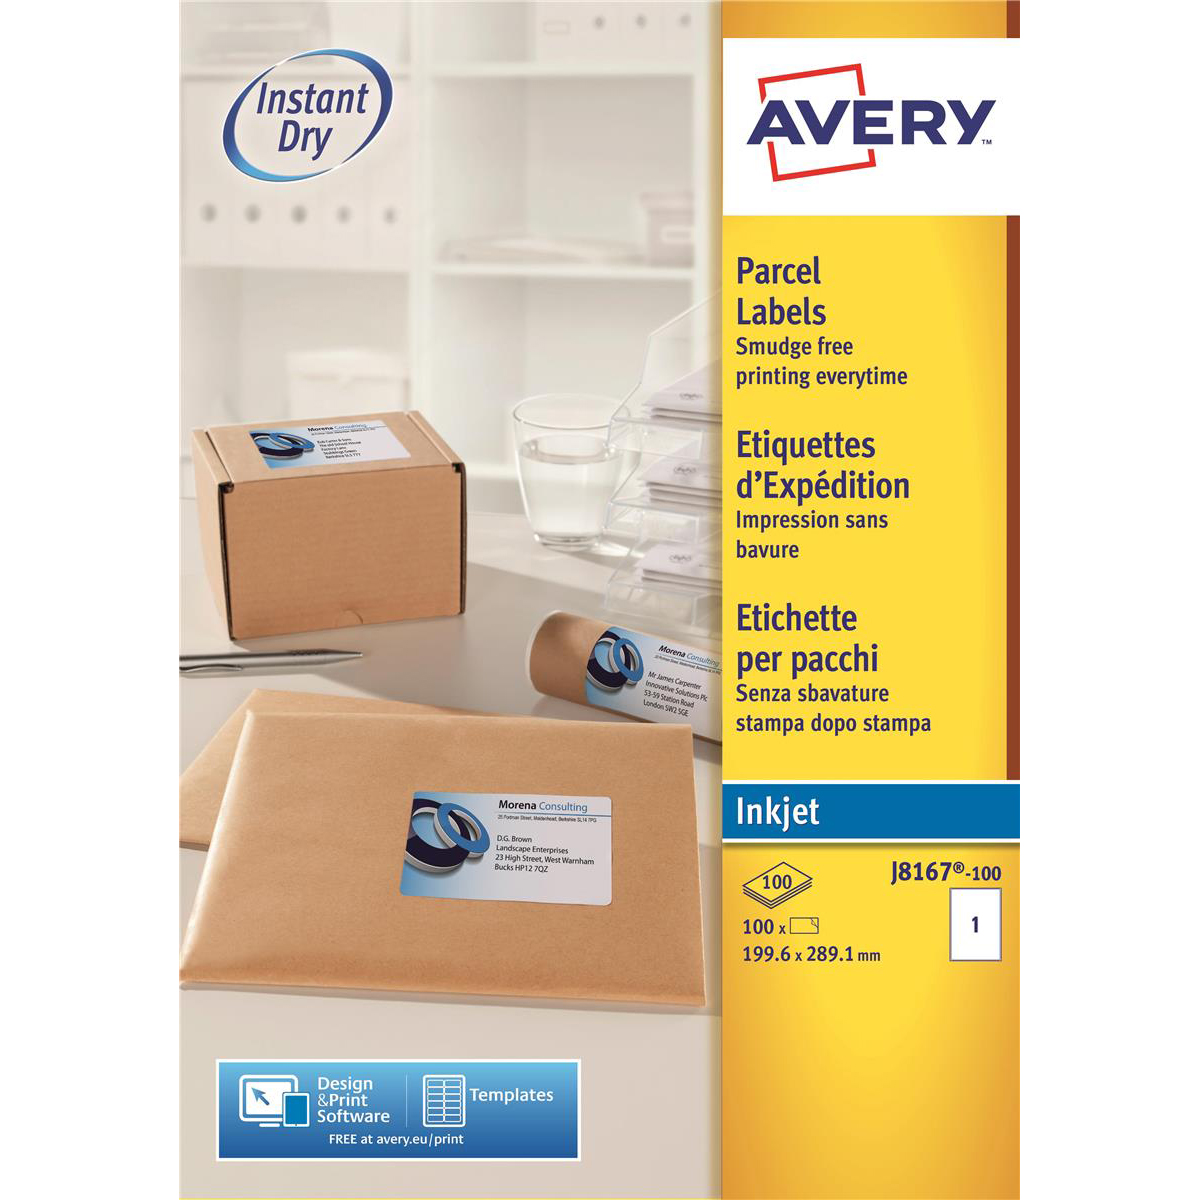 Address Avery Quick DRY Parcel Labels Inkjet 1 per Sheet 199.6x289.1mm White Ref J8167-100 100 Labels